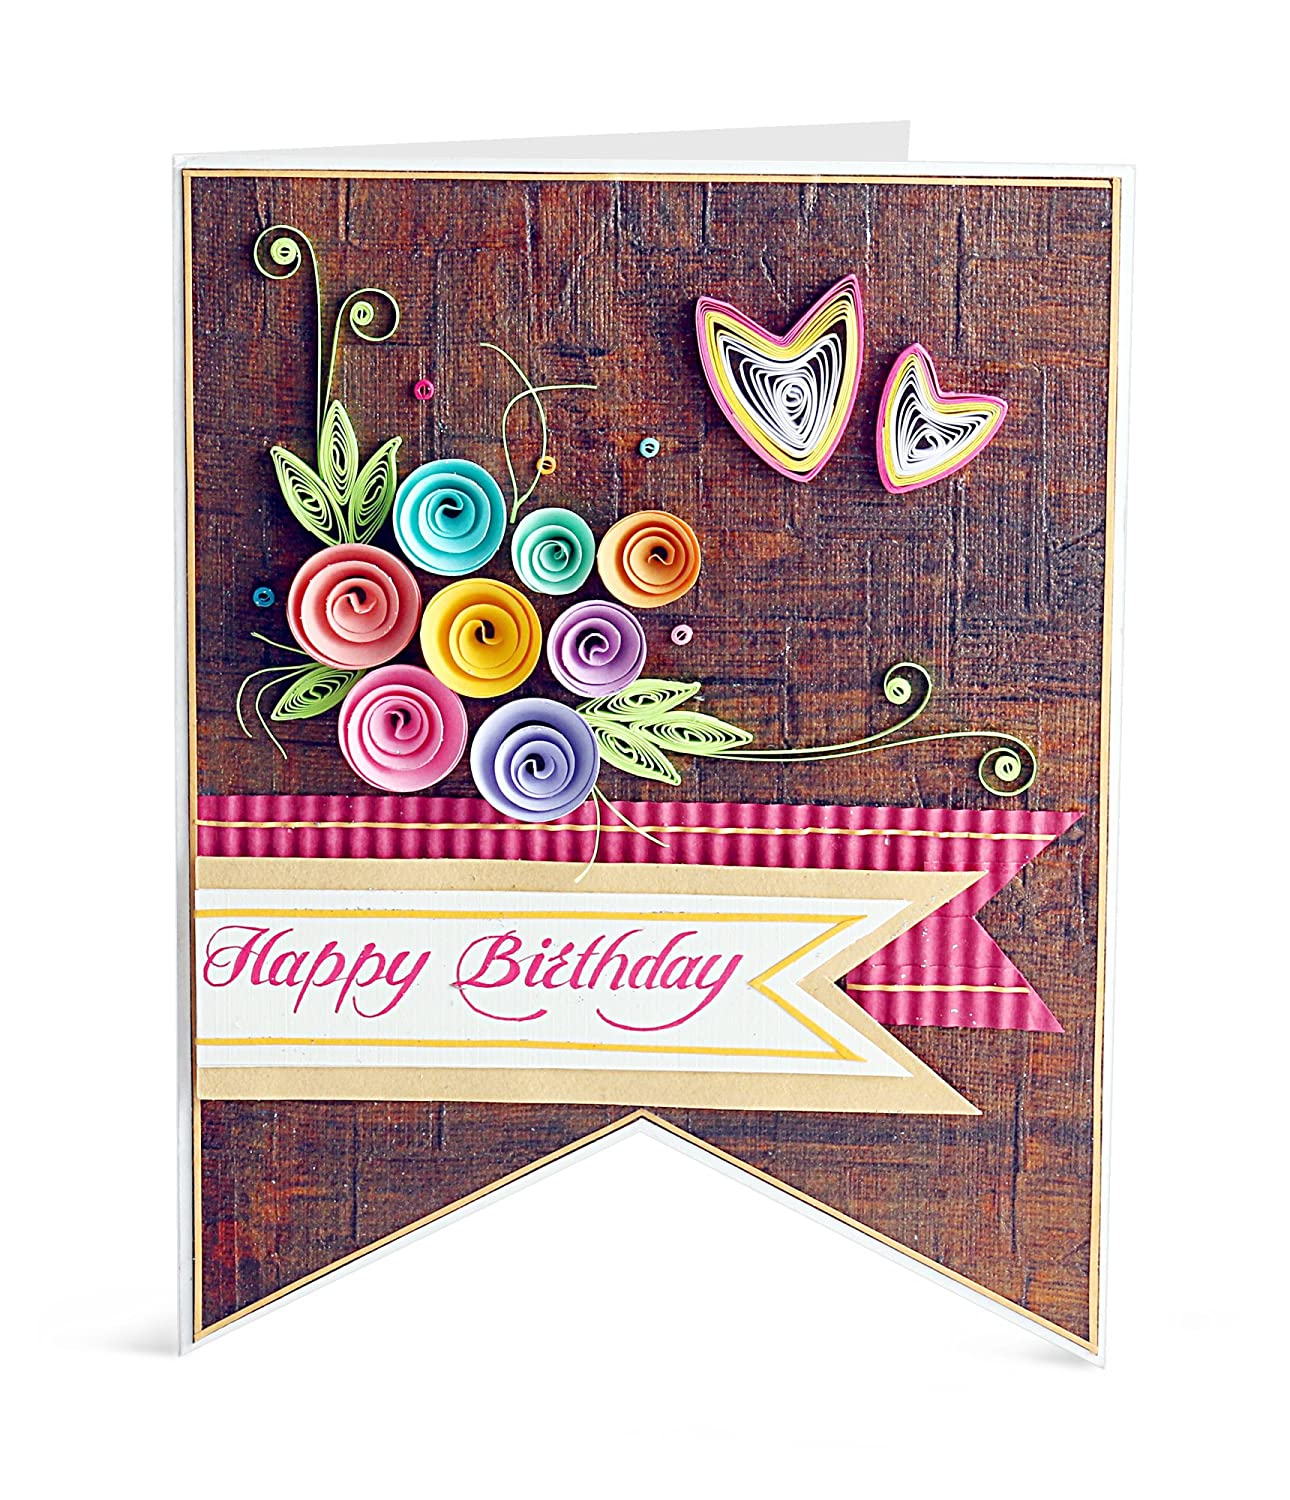 Handcrafted Emotions Handmade Birthday Greeting Card Amazon